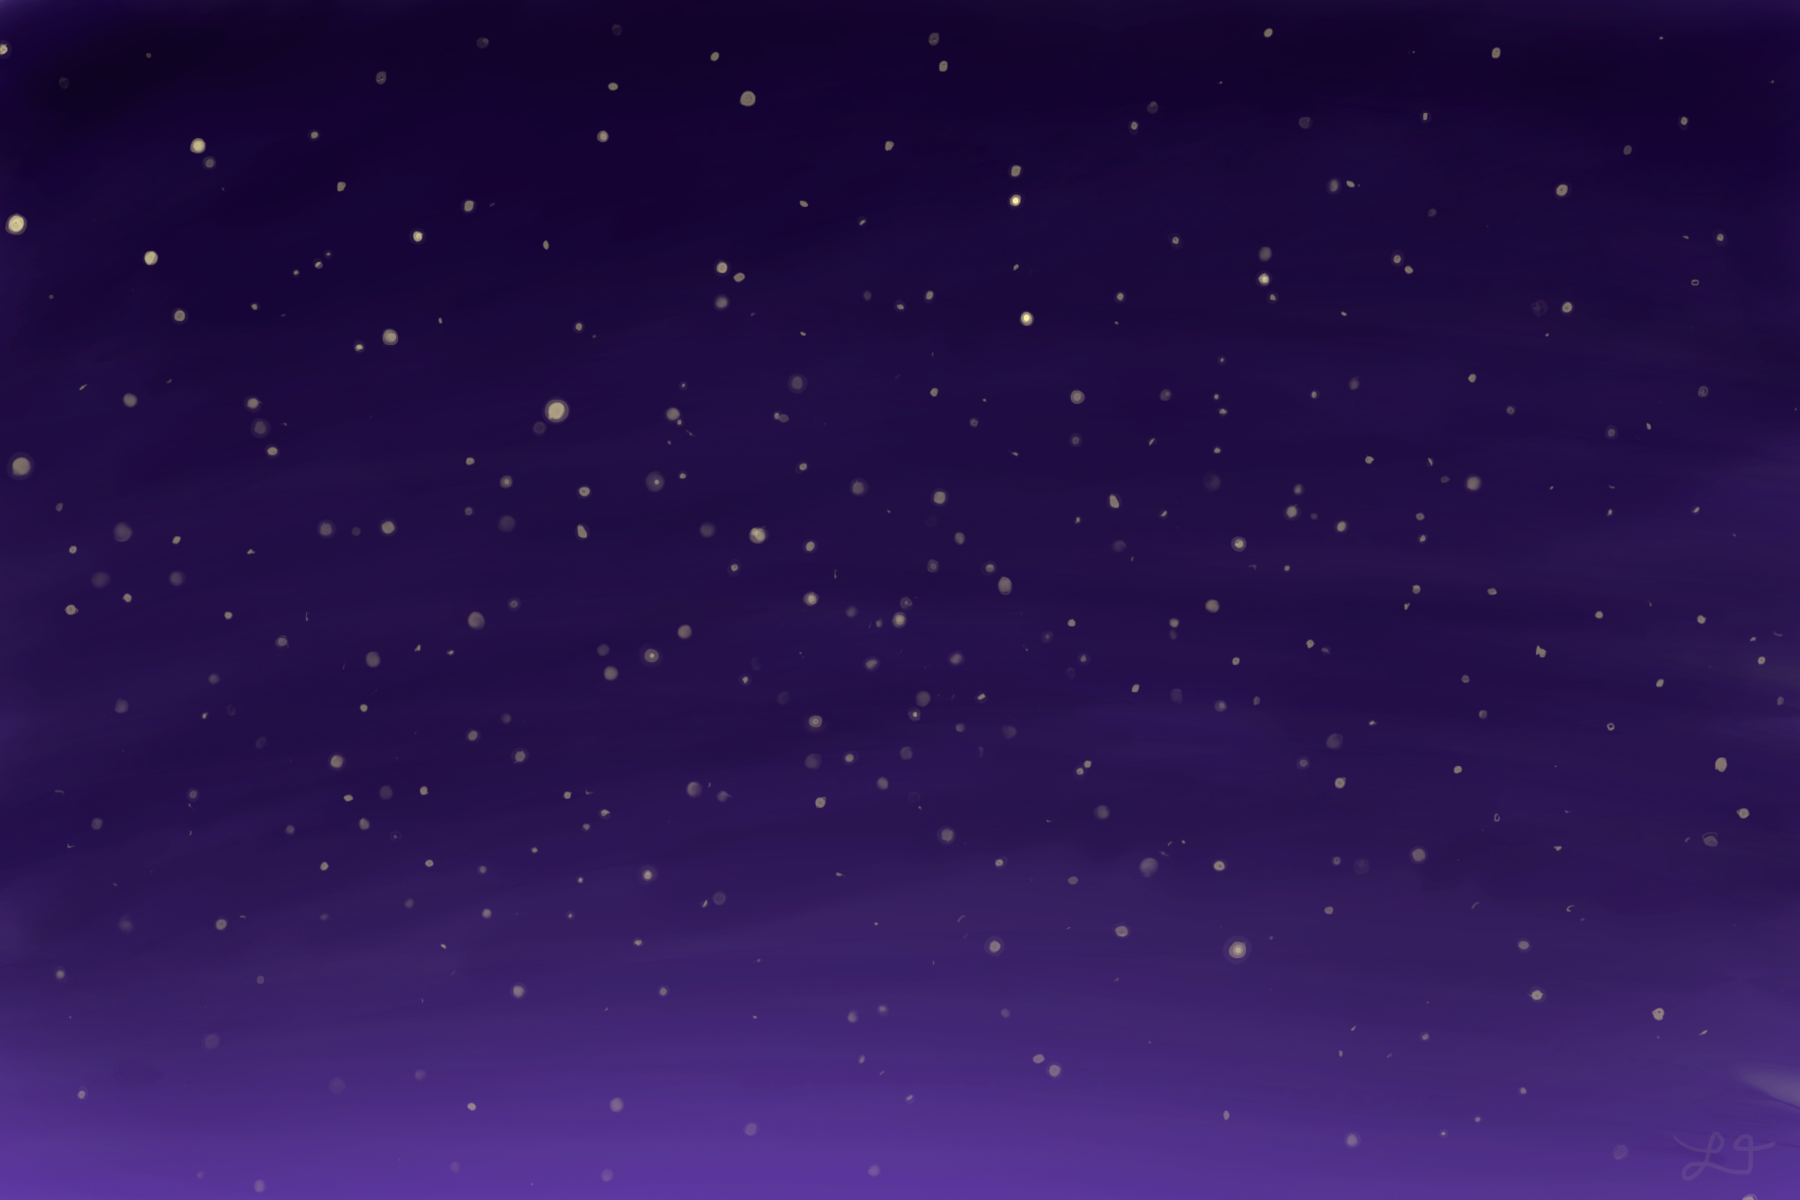 Purple Stary Night Wallpaper Computer | UTILILAB SearchGUARDIAN